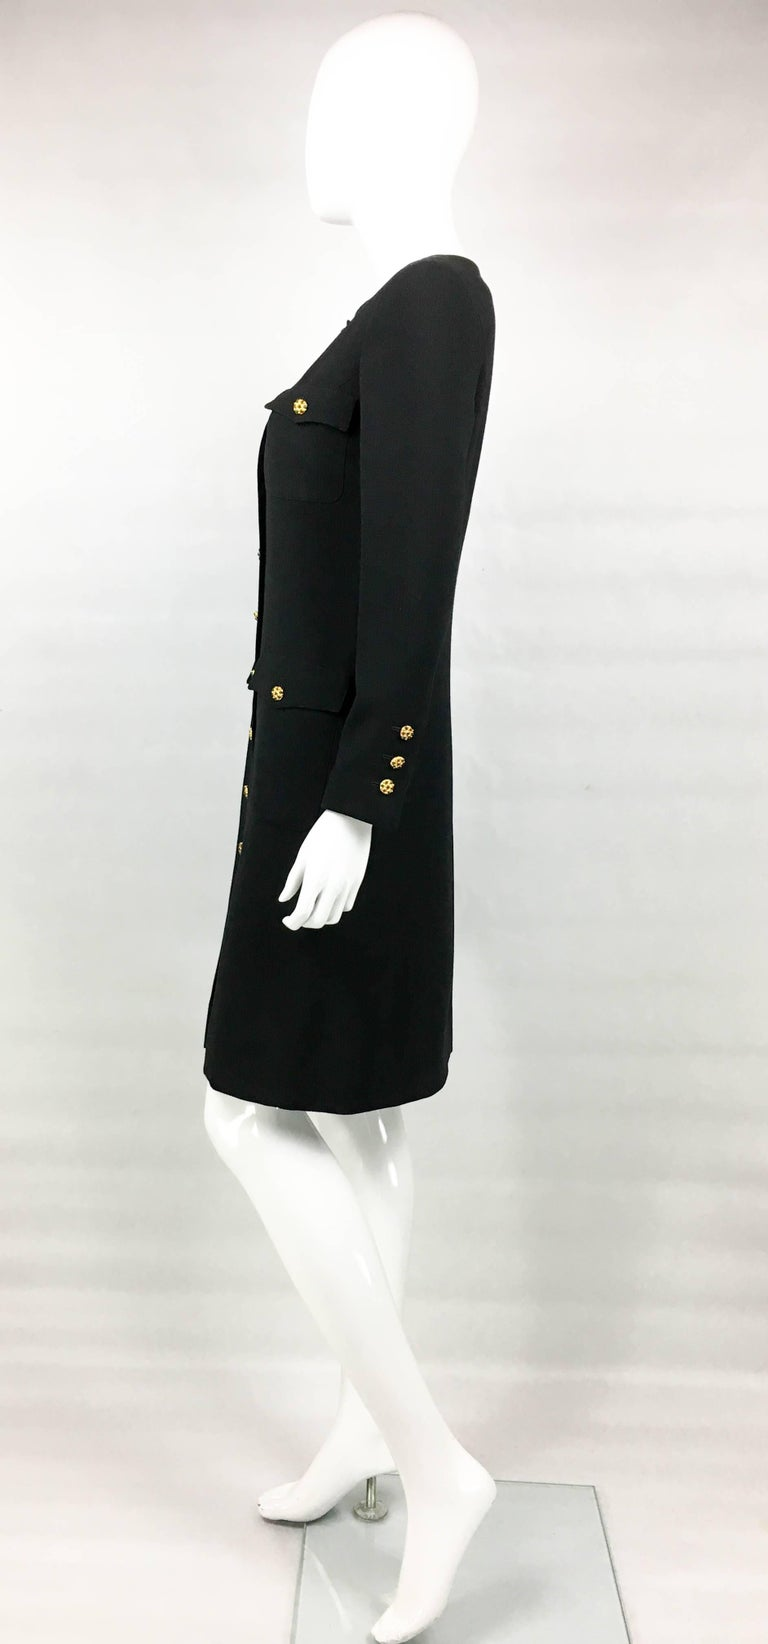 1996 Chanel Runway Look Black Wool Coat / Dress With Baroque-Style Buttons For Sale 2